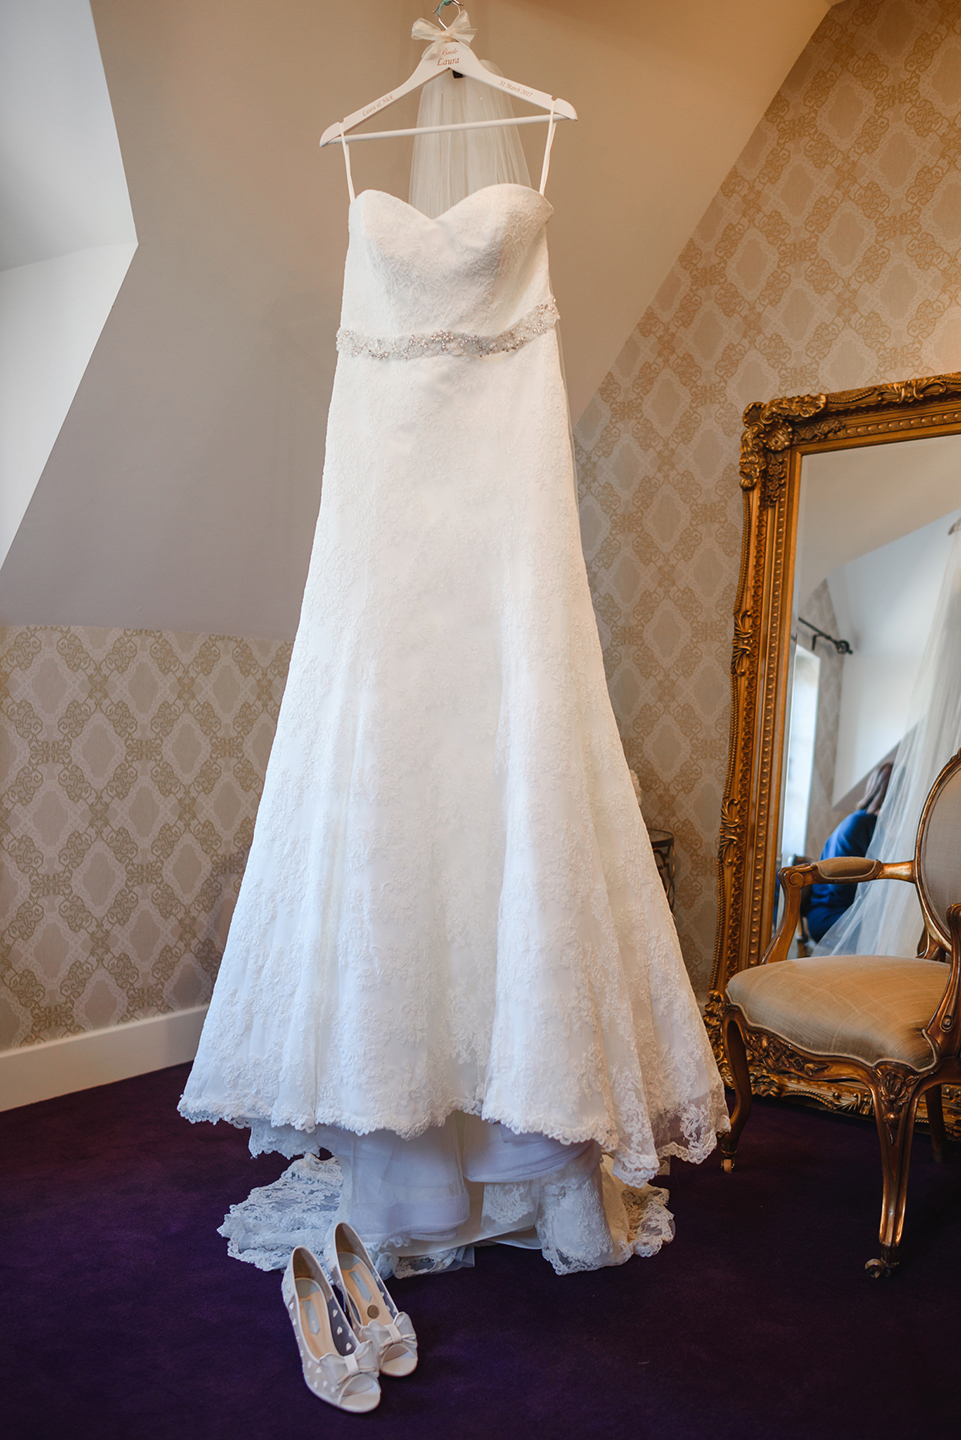 The bride's wedding dress hangs from the beams in the Bridal Boudoir